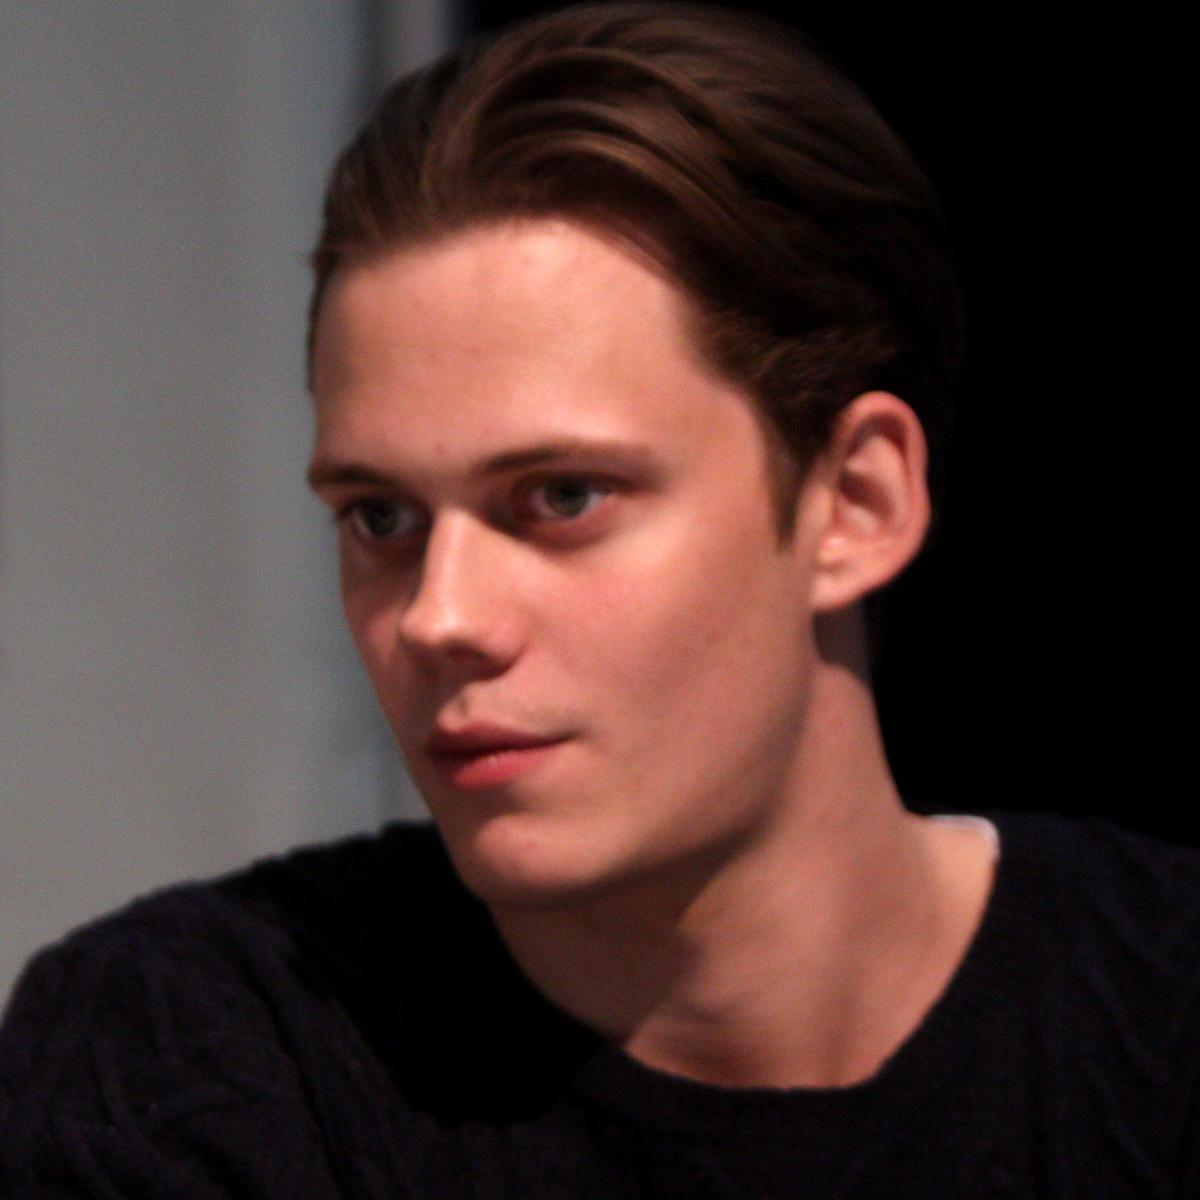 Actor Bill Skarsgard: biography, personal life, movies, interesting facts 8